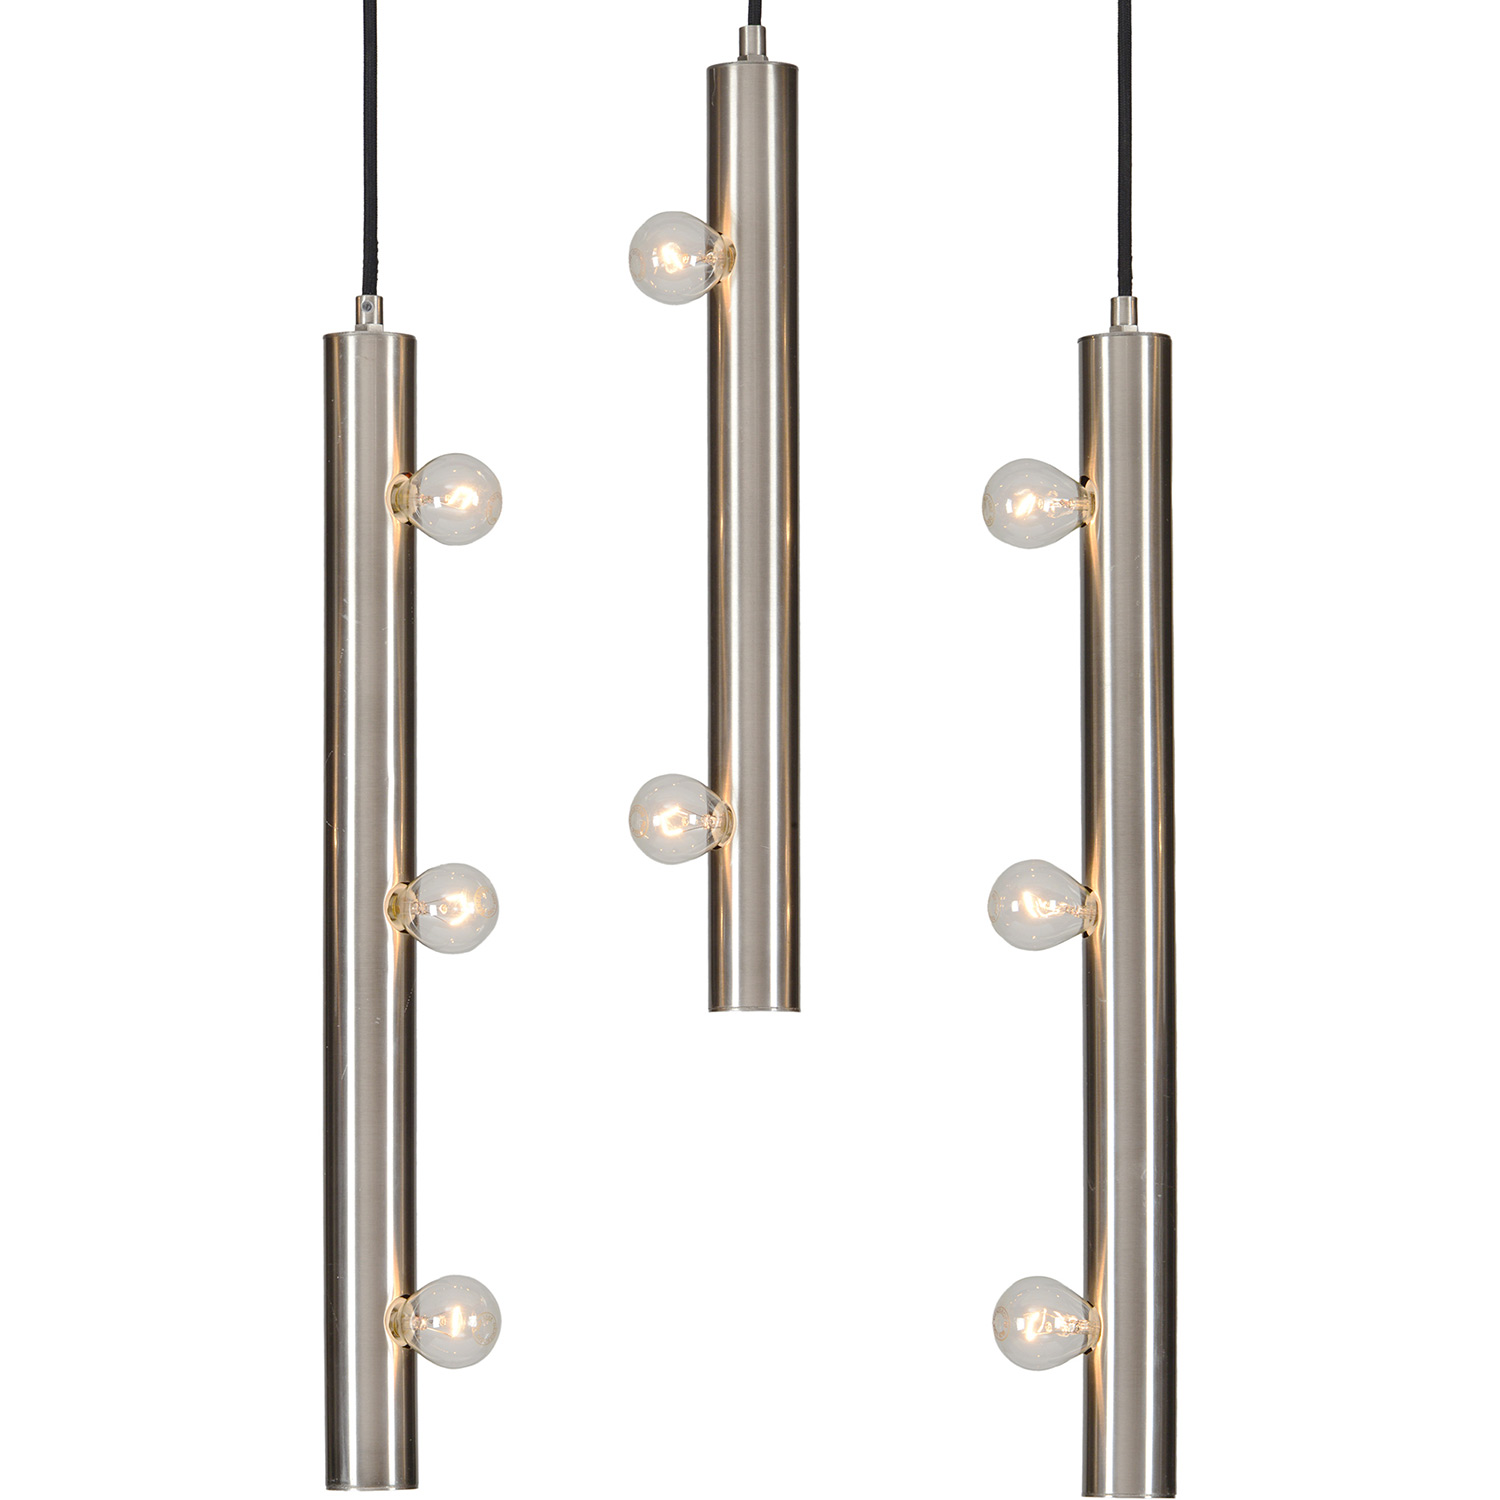 Ren-Wil Saxton Ceiling Fixture - Pewter Plated